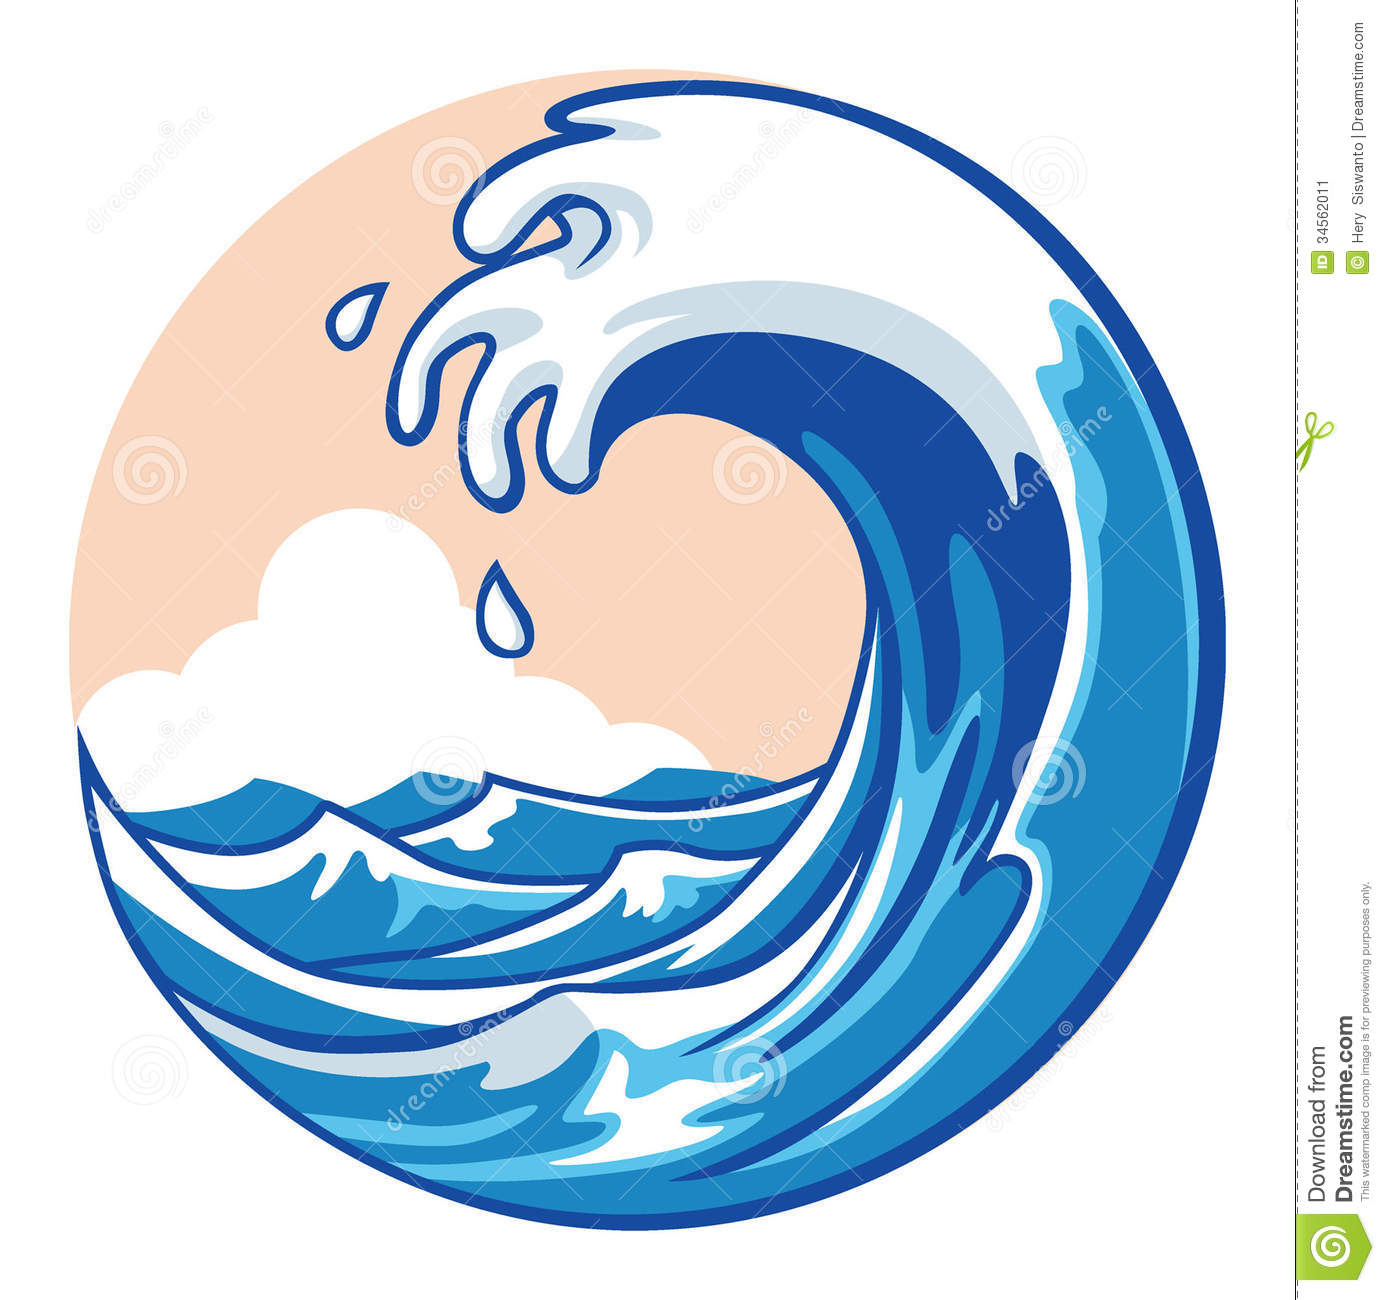 ocean wave clipart panda free clipart images rh clipartpanda com ocean wave clipart free Water Waves Clip Art Black and White